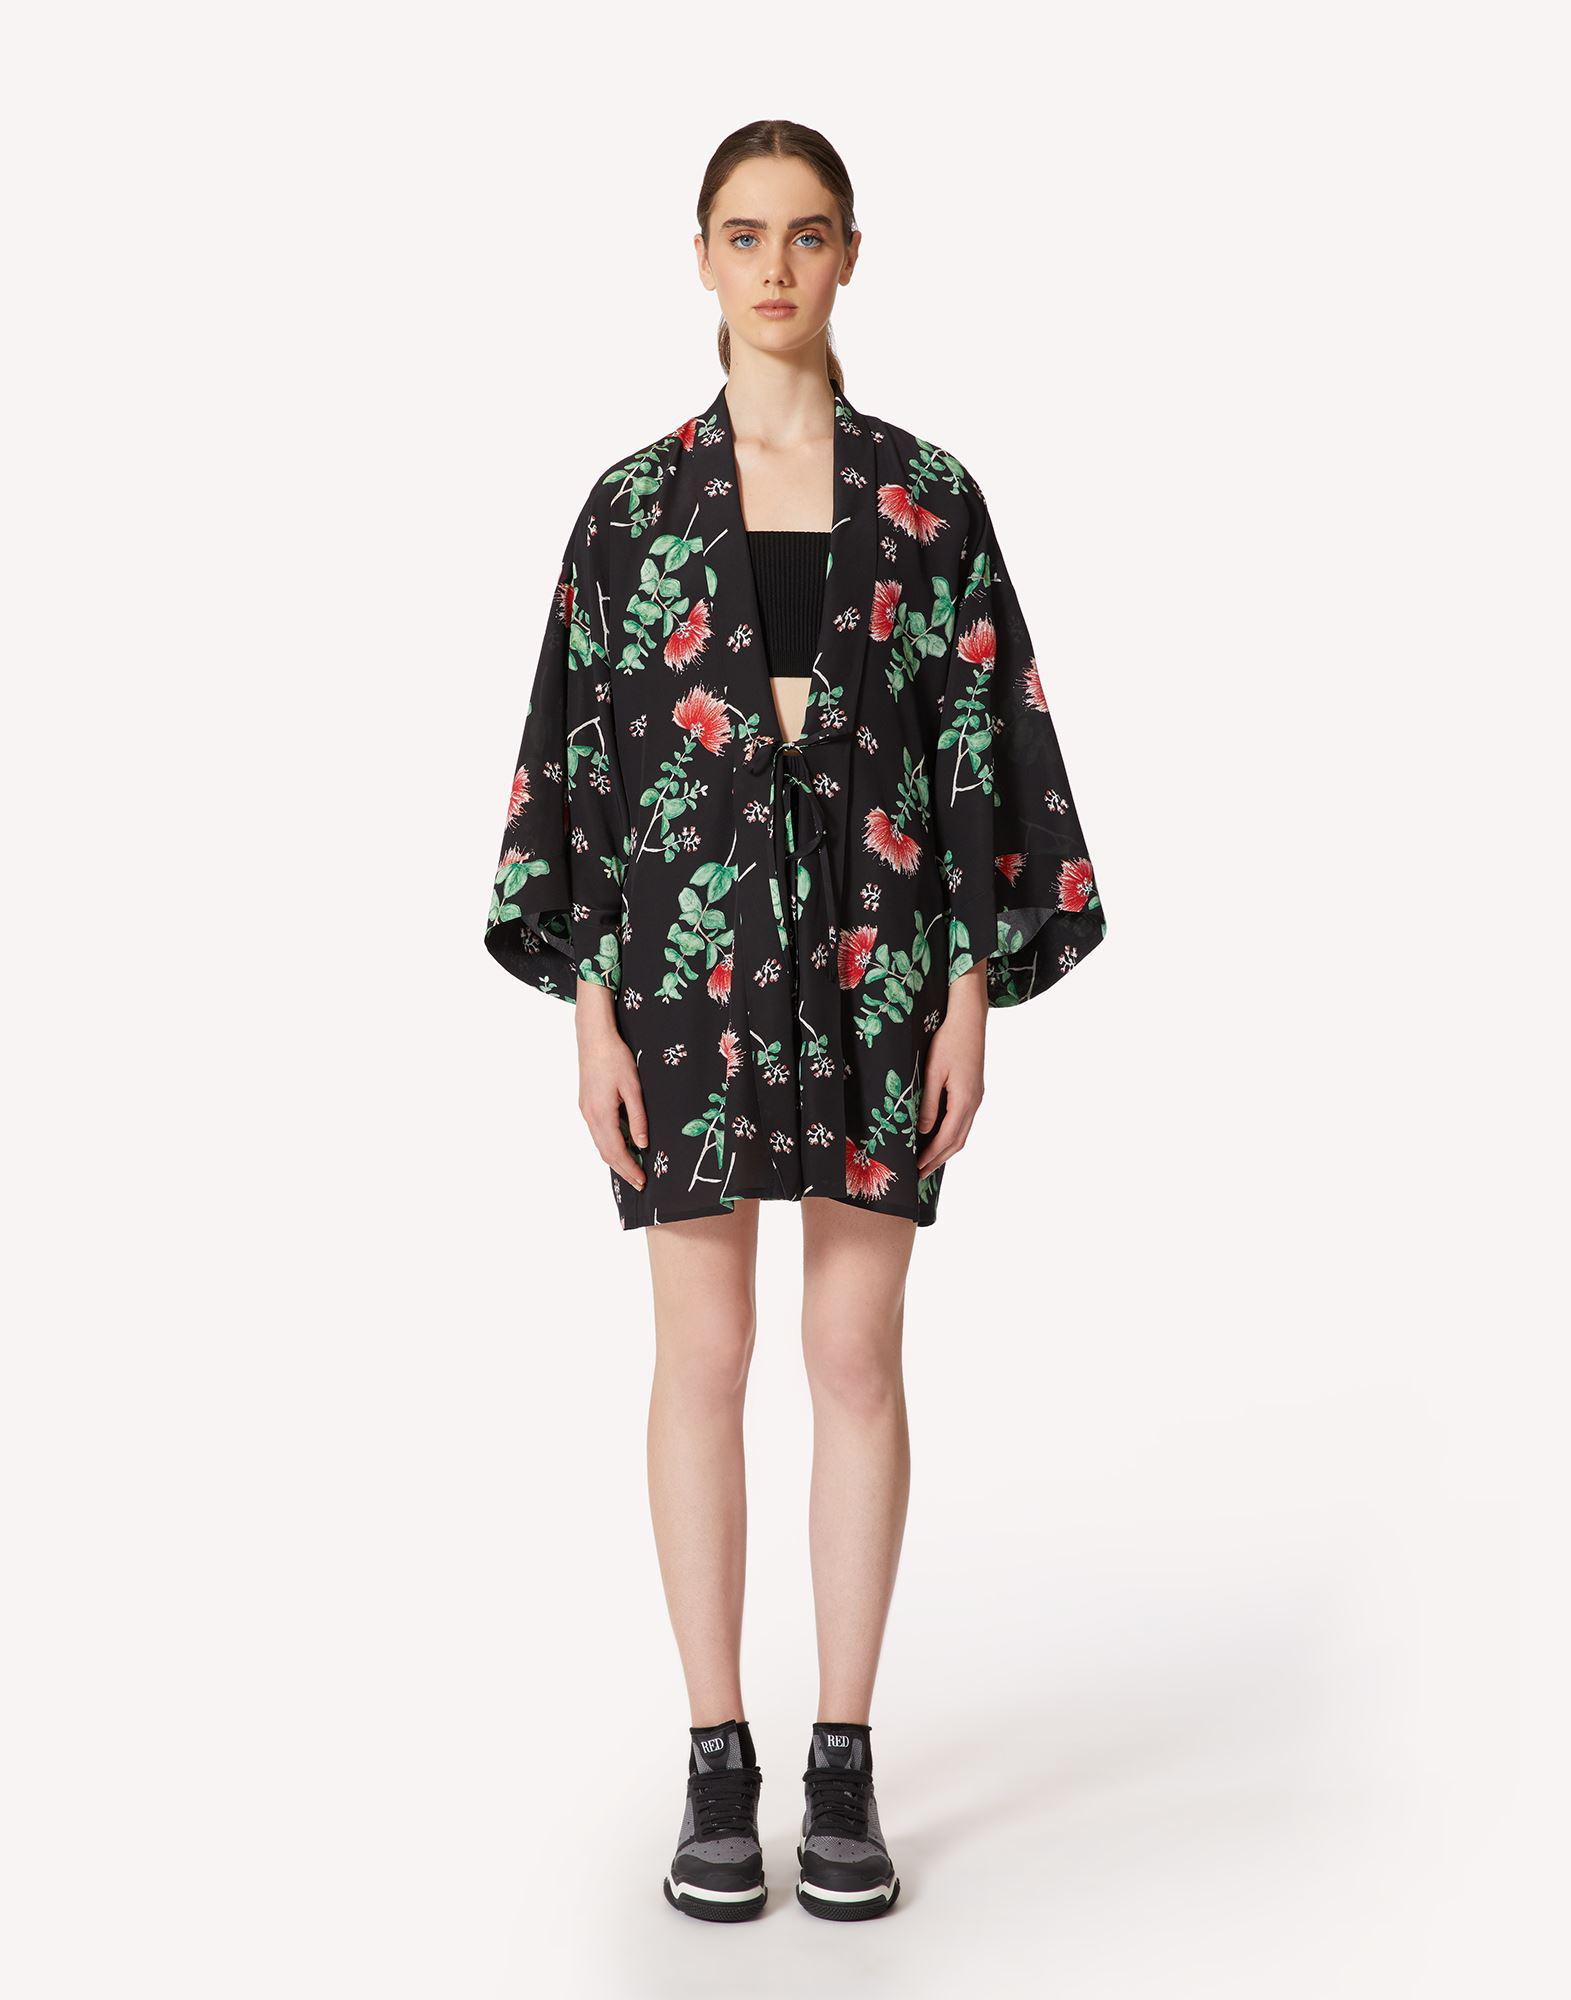 CHELSEA IN BLOOM LIMITED EDITION - PRINTED SILK PEA COAT